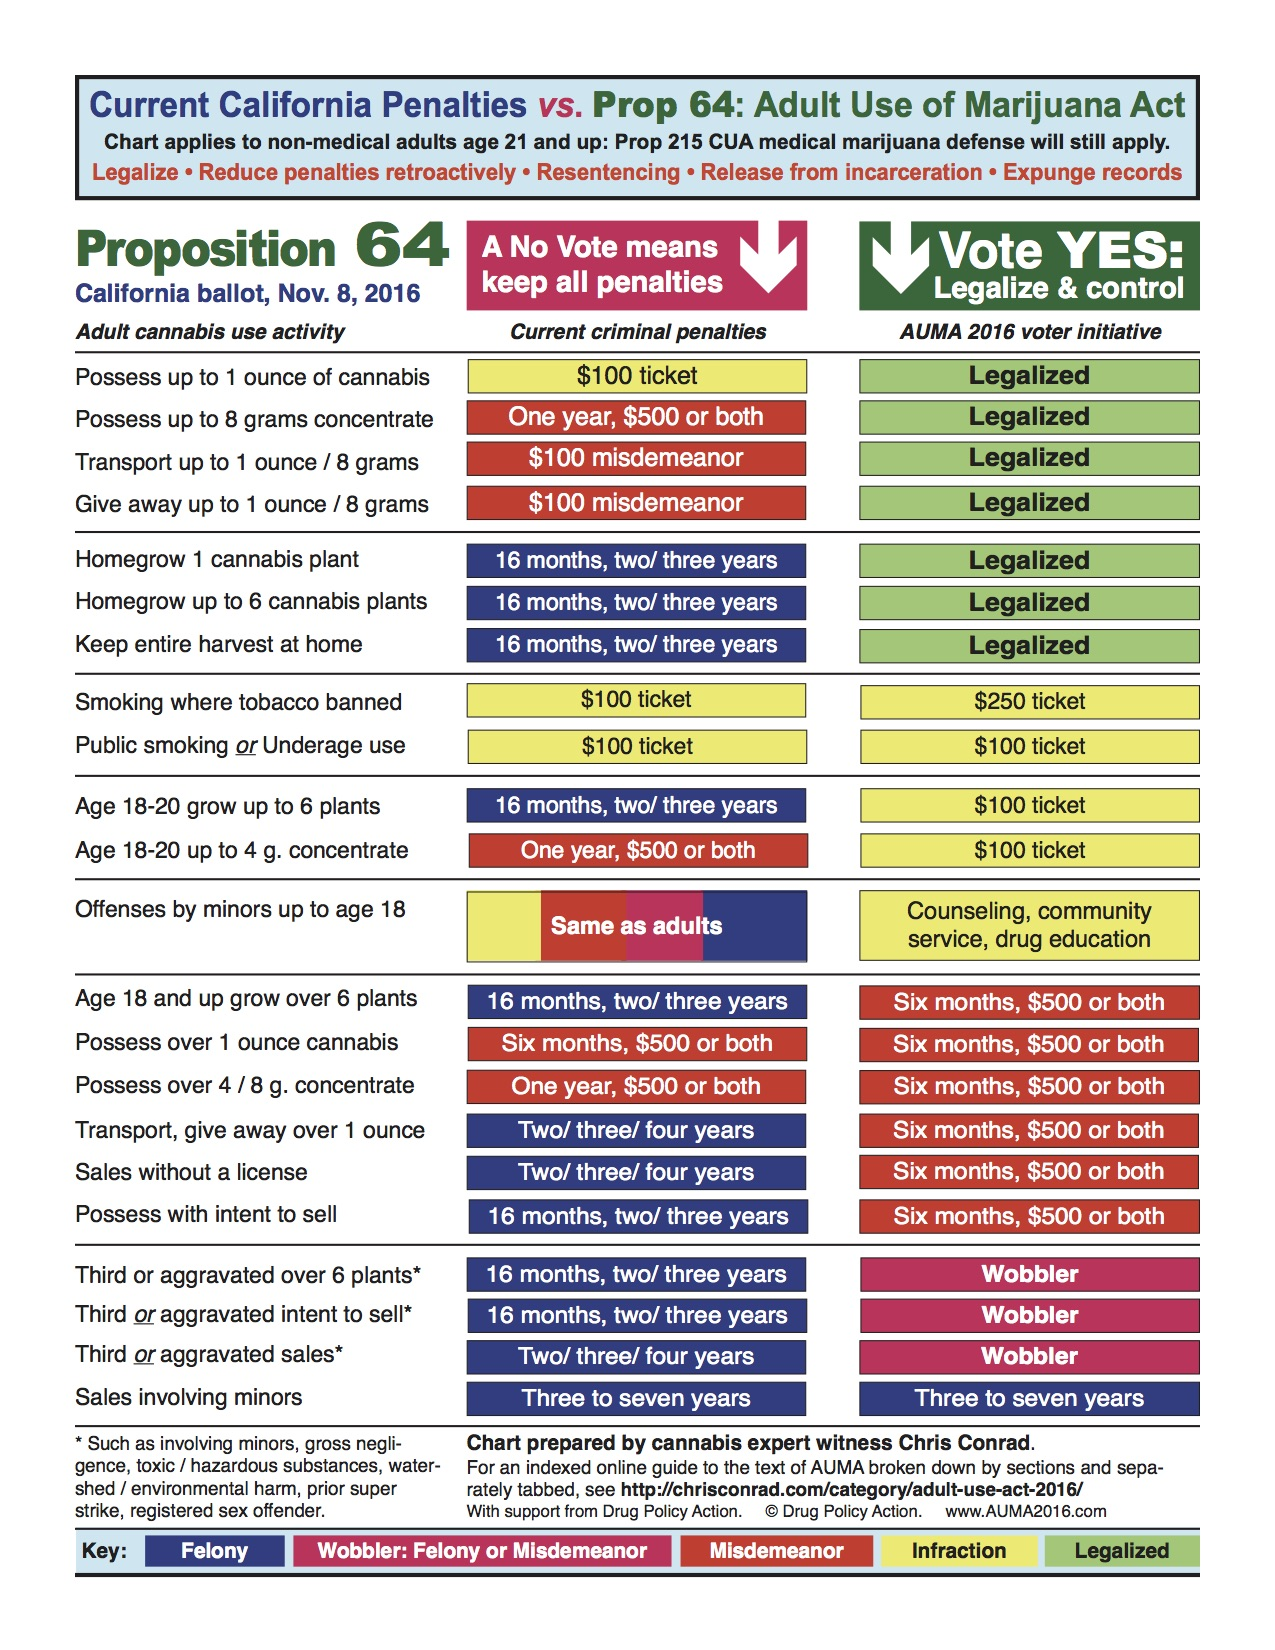 Prop 64 Penalty Chart